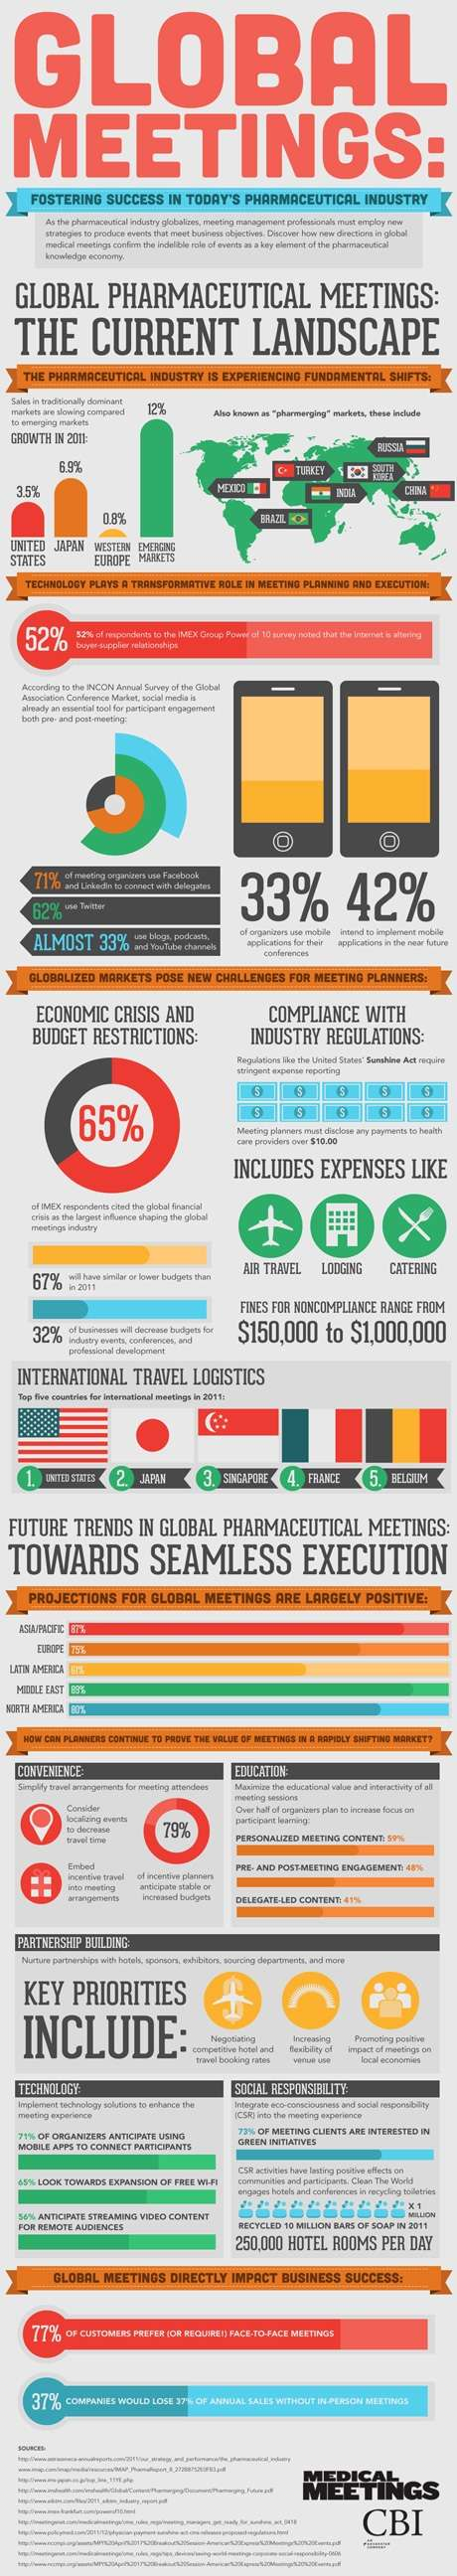 Global Medical Meetings Infographic